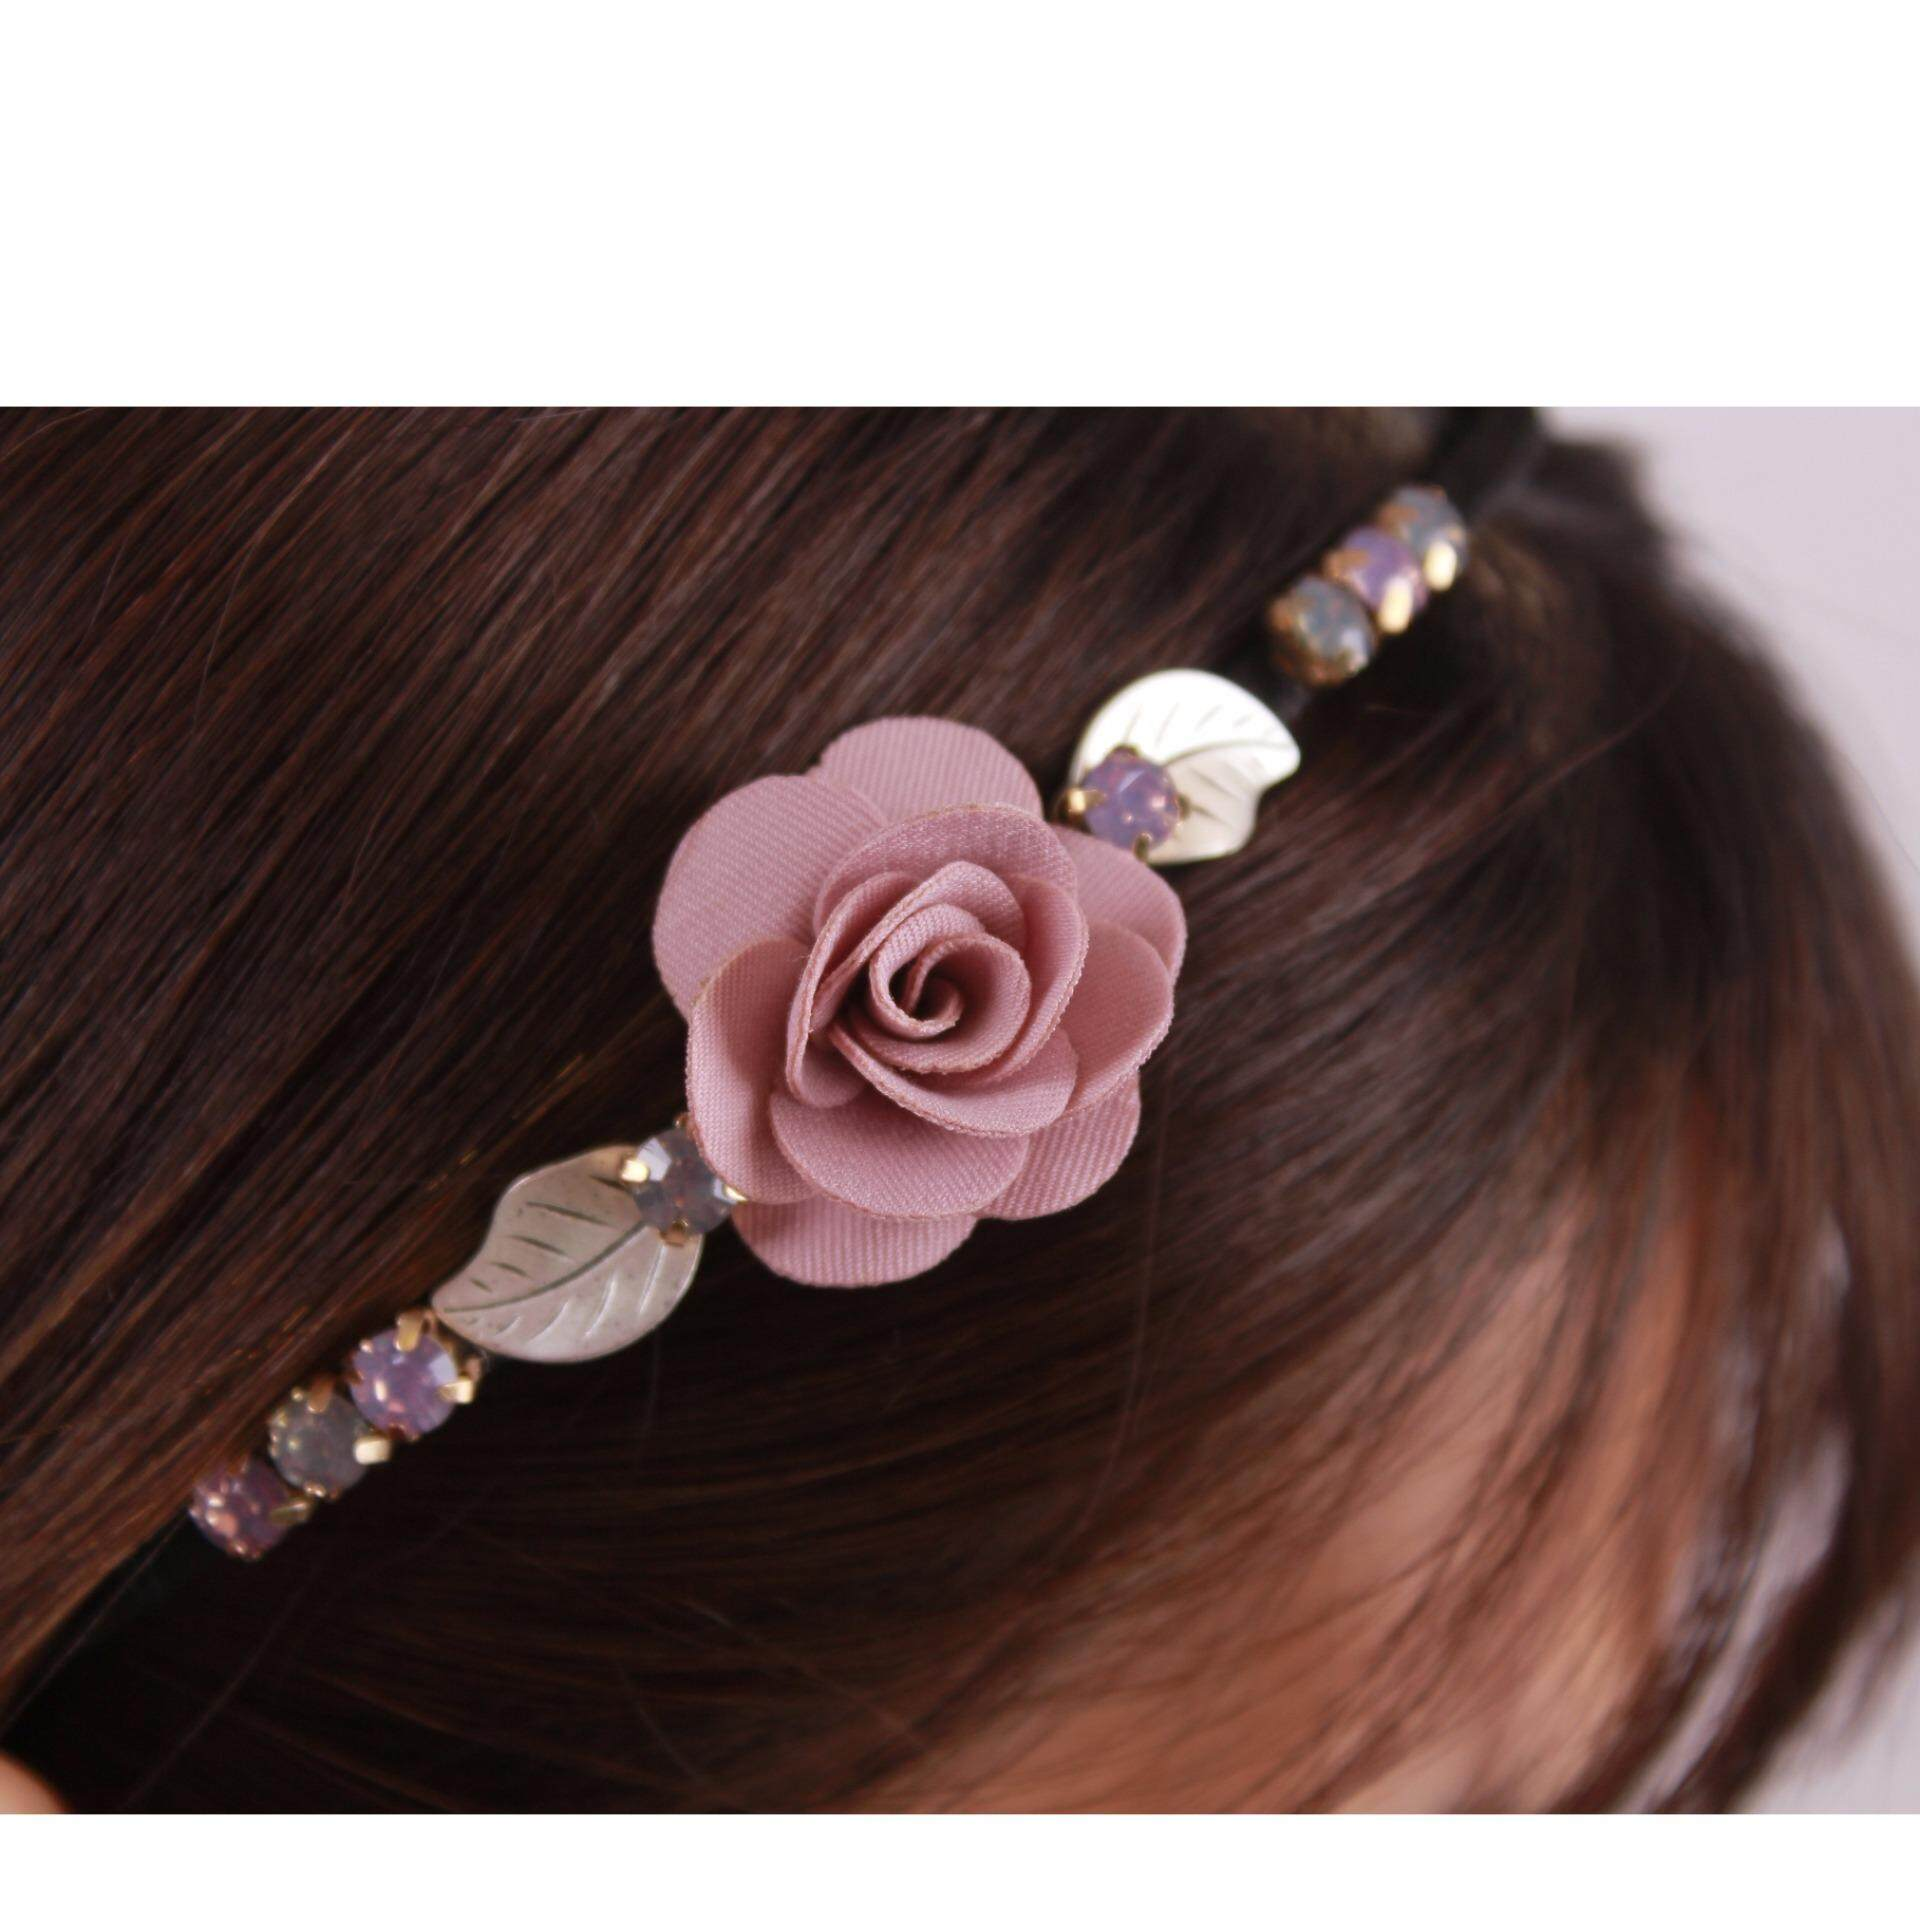 AFGY 0549 FGA 206 P Vintage Inspired Floral Hairband (Pink)